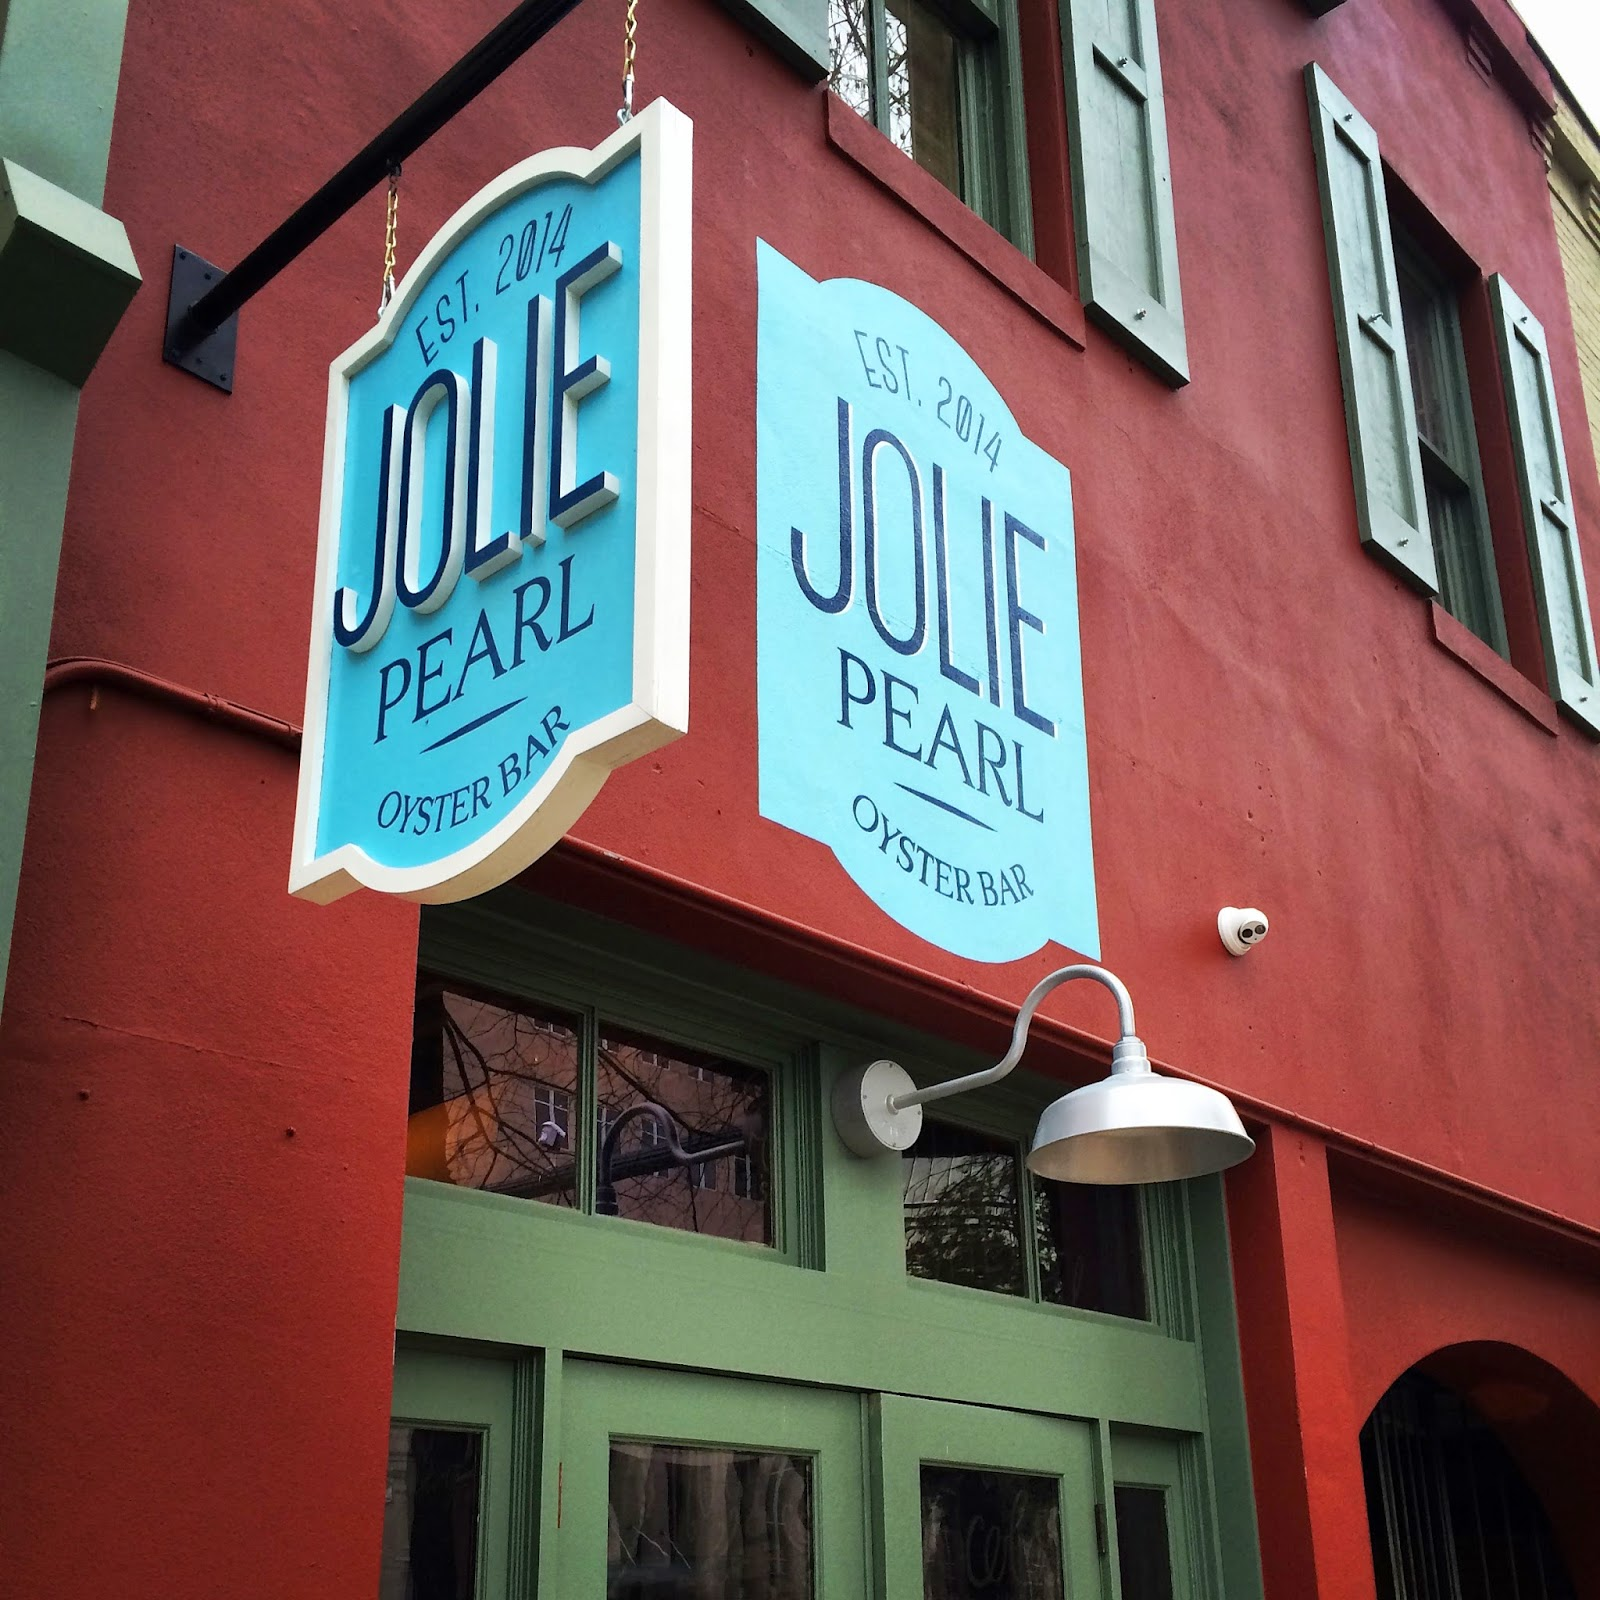 Jolie Pearl, located at 315 North Blvd.